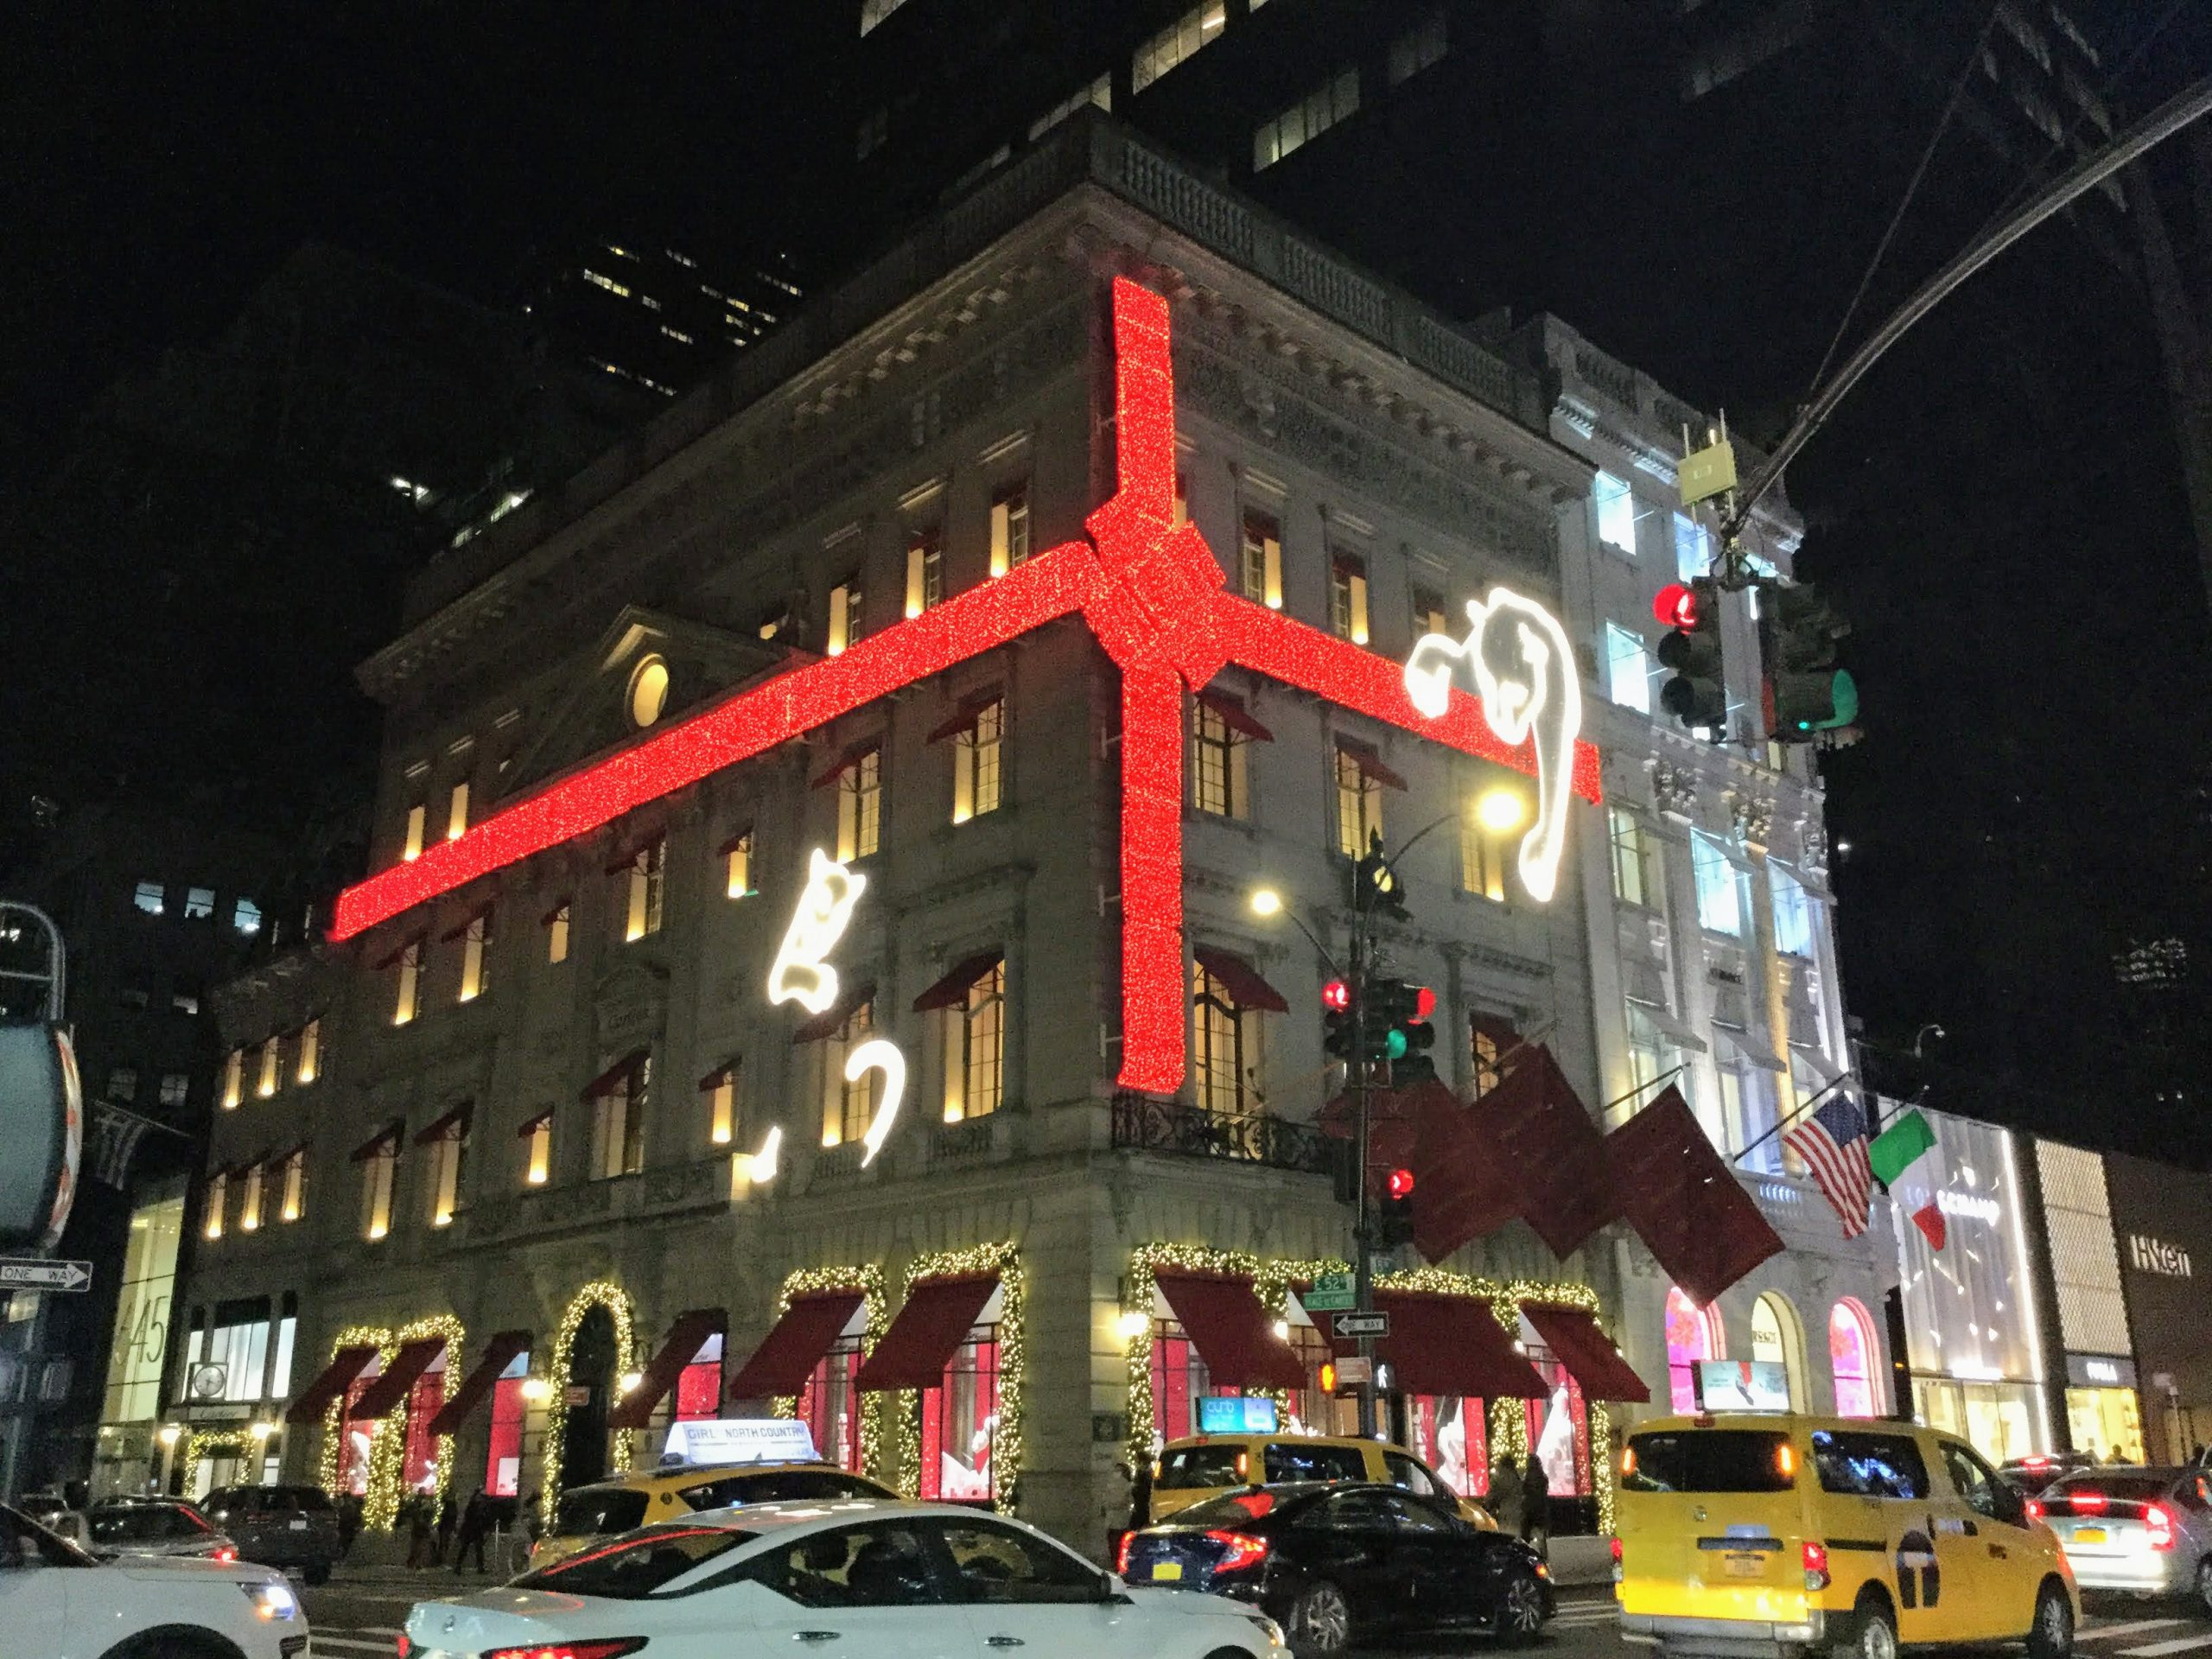 Saks and Cartier